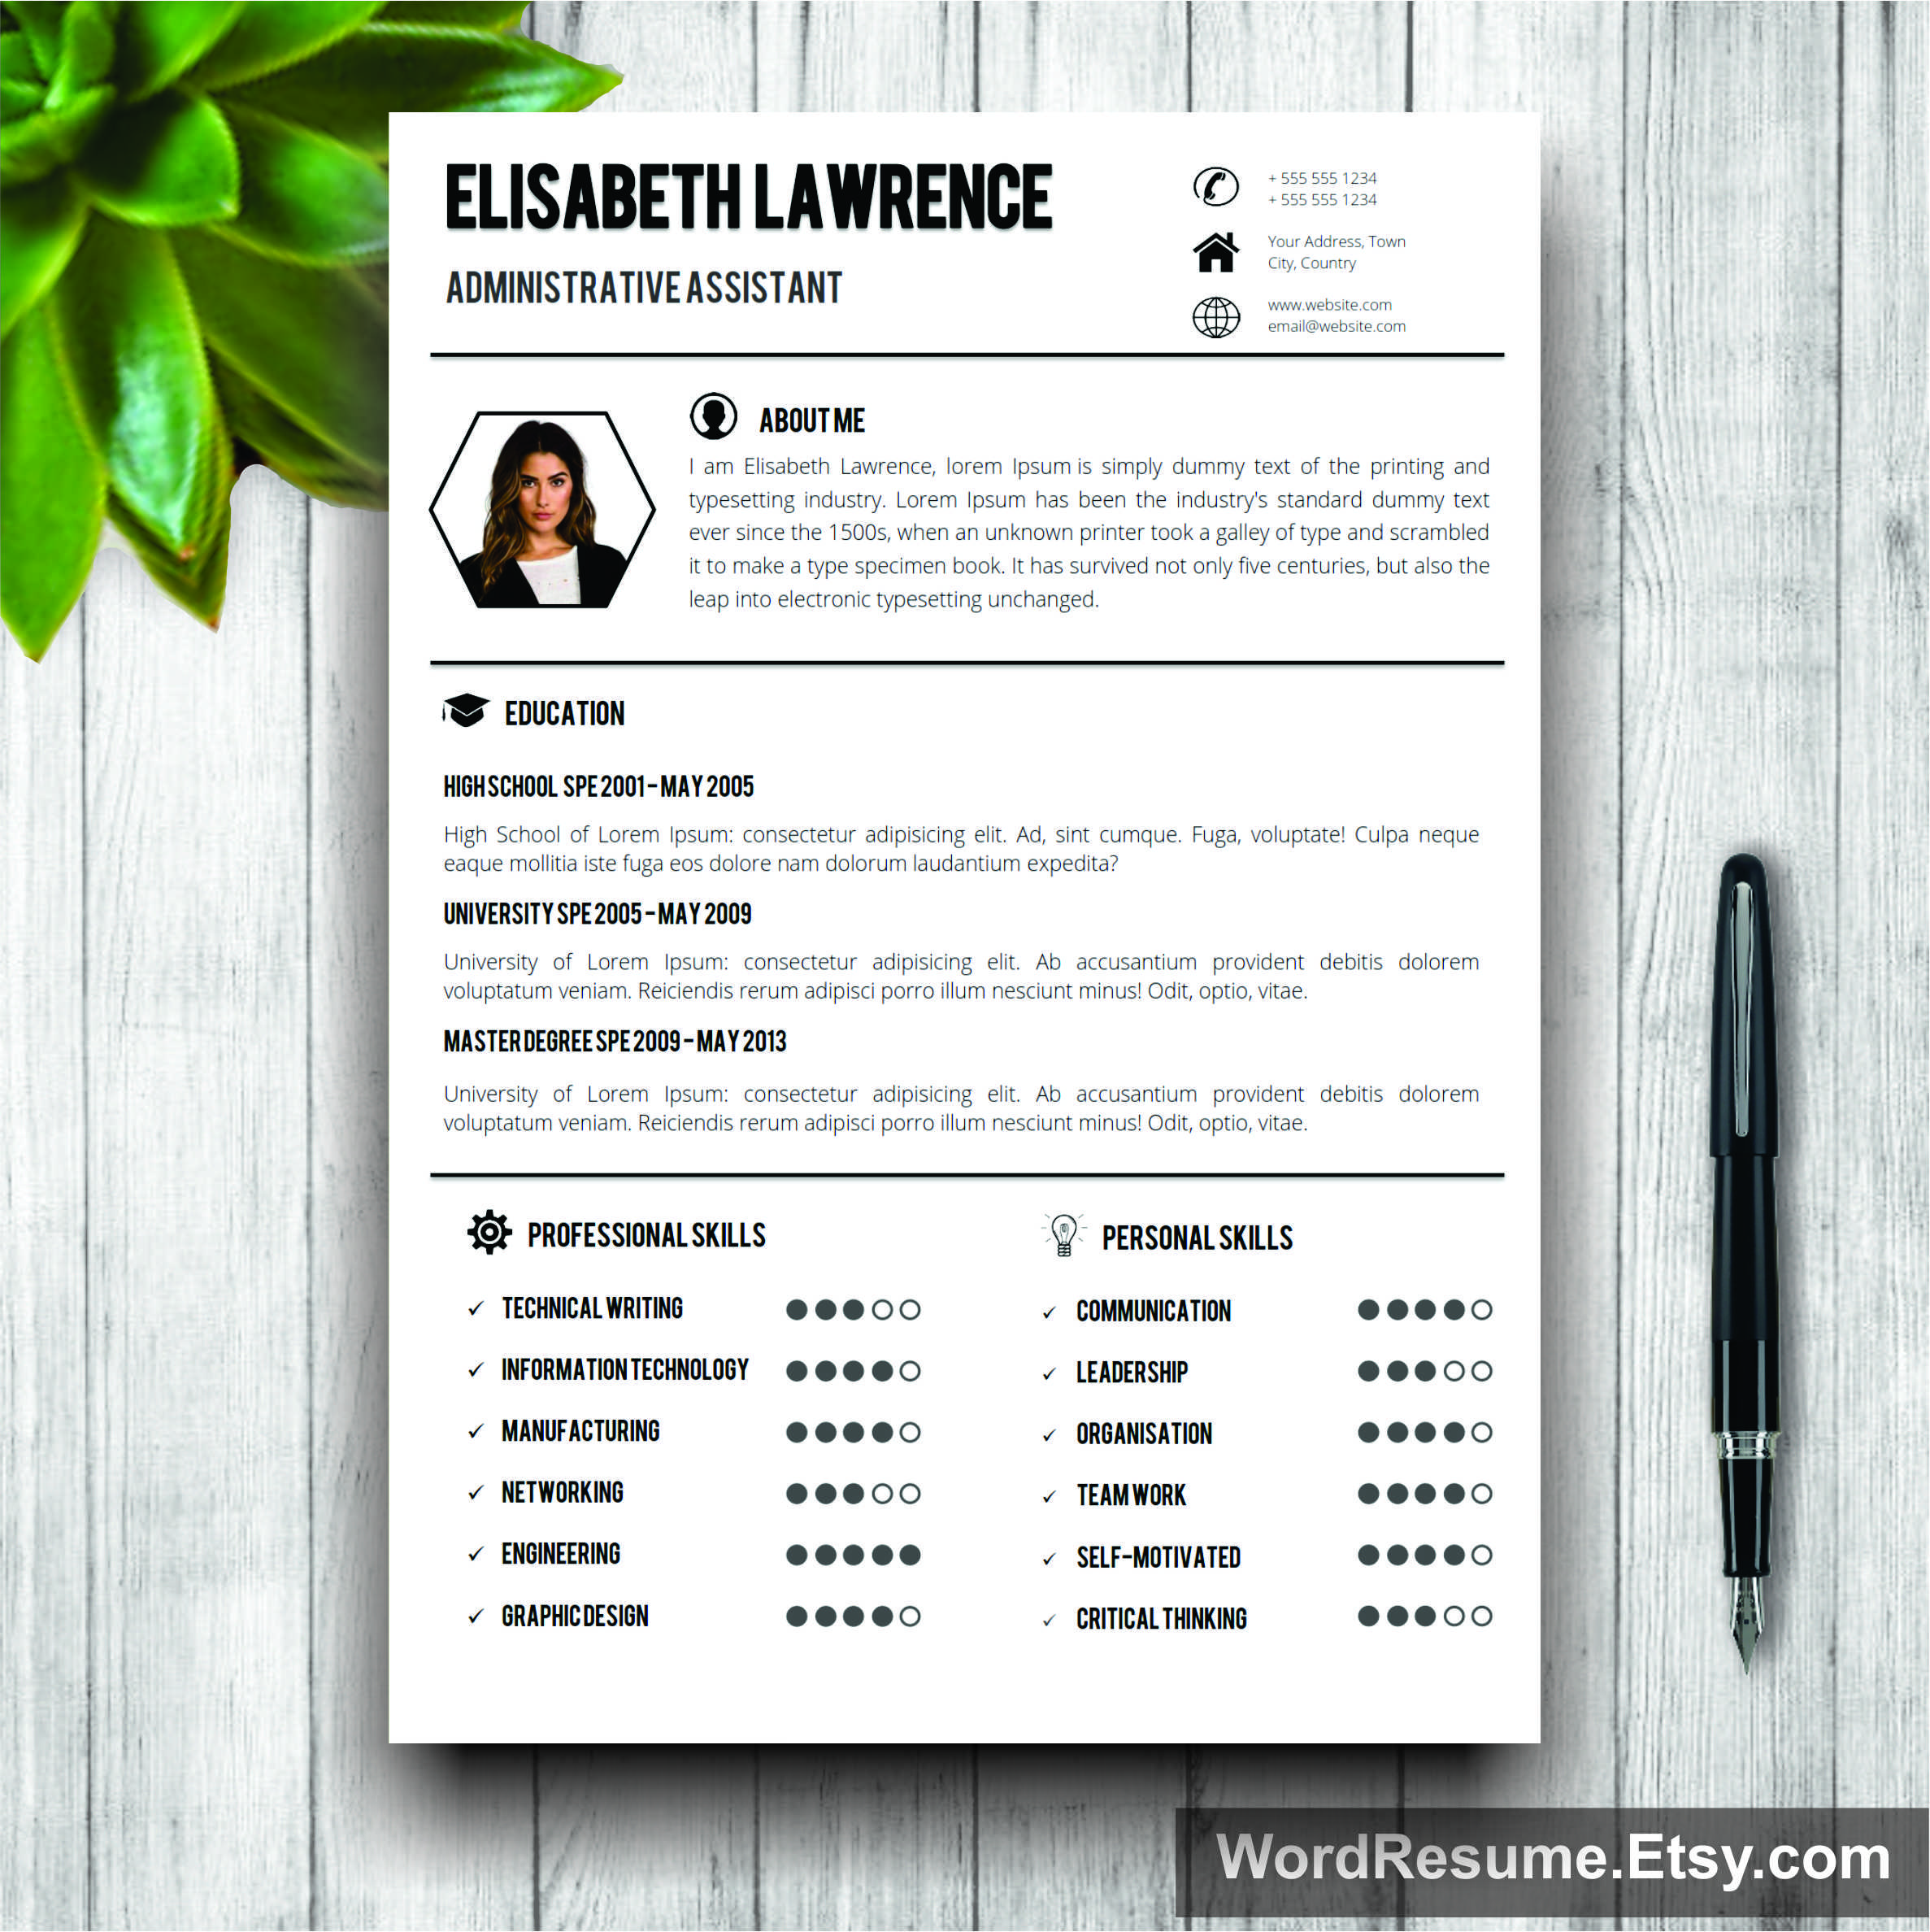 word resume template with photo cover letter elisabeth lawrence - Word 2007 Resume Template